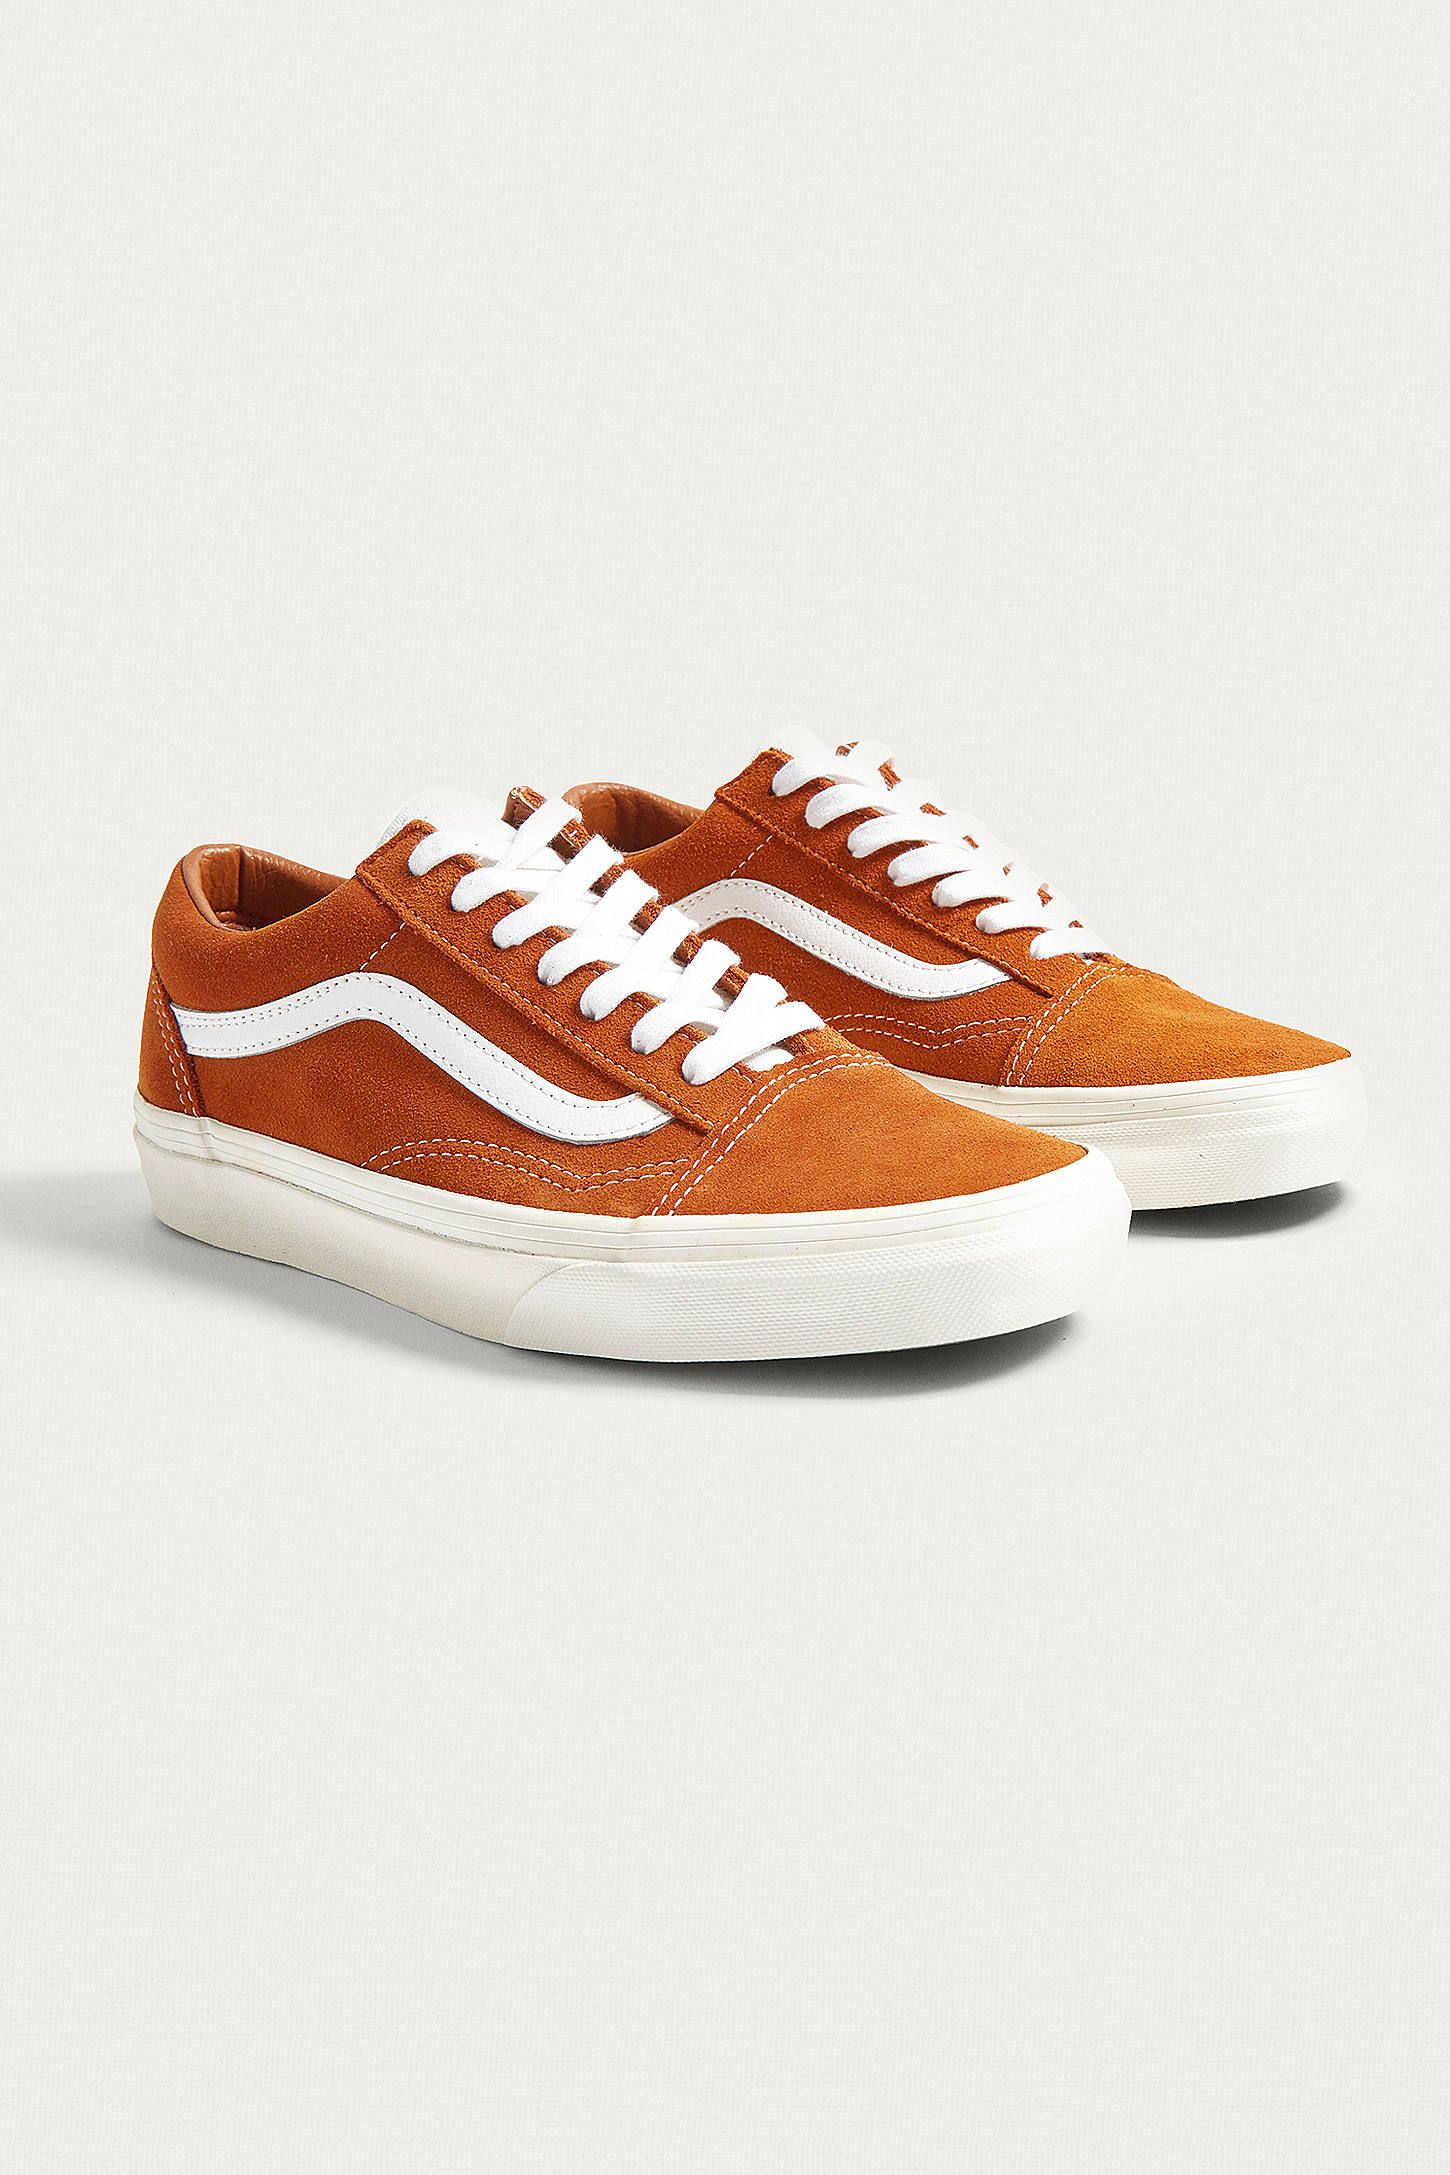 08ef9360a0e Shop Vans Retro Sport Old Skool Trainers at Urban Outfitters today. We  carry all the latest styles